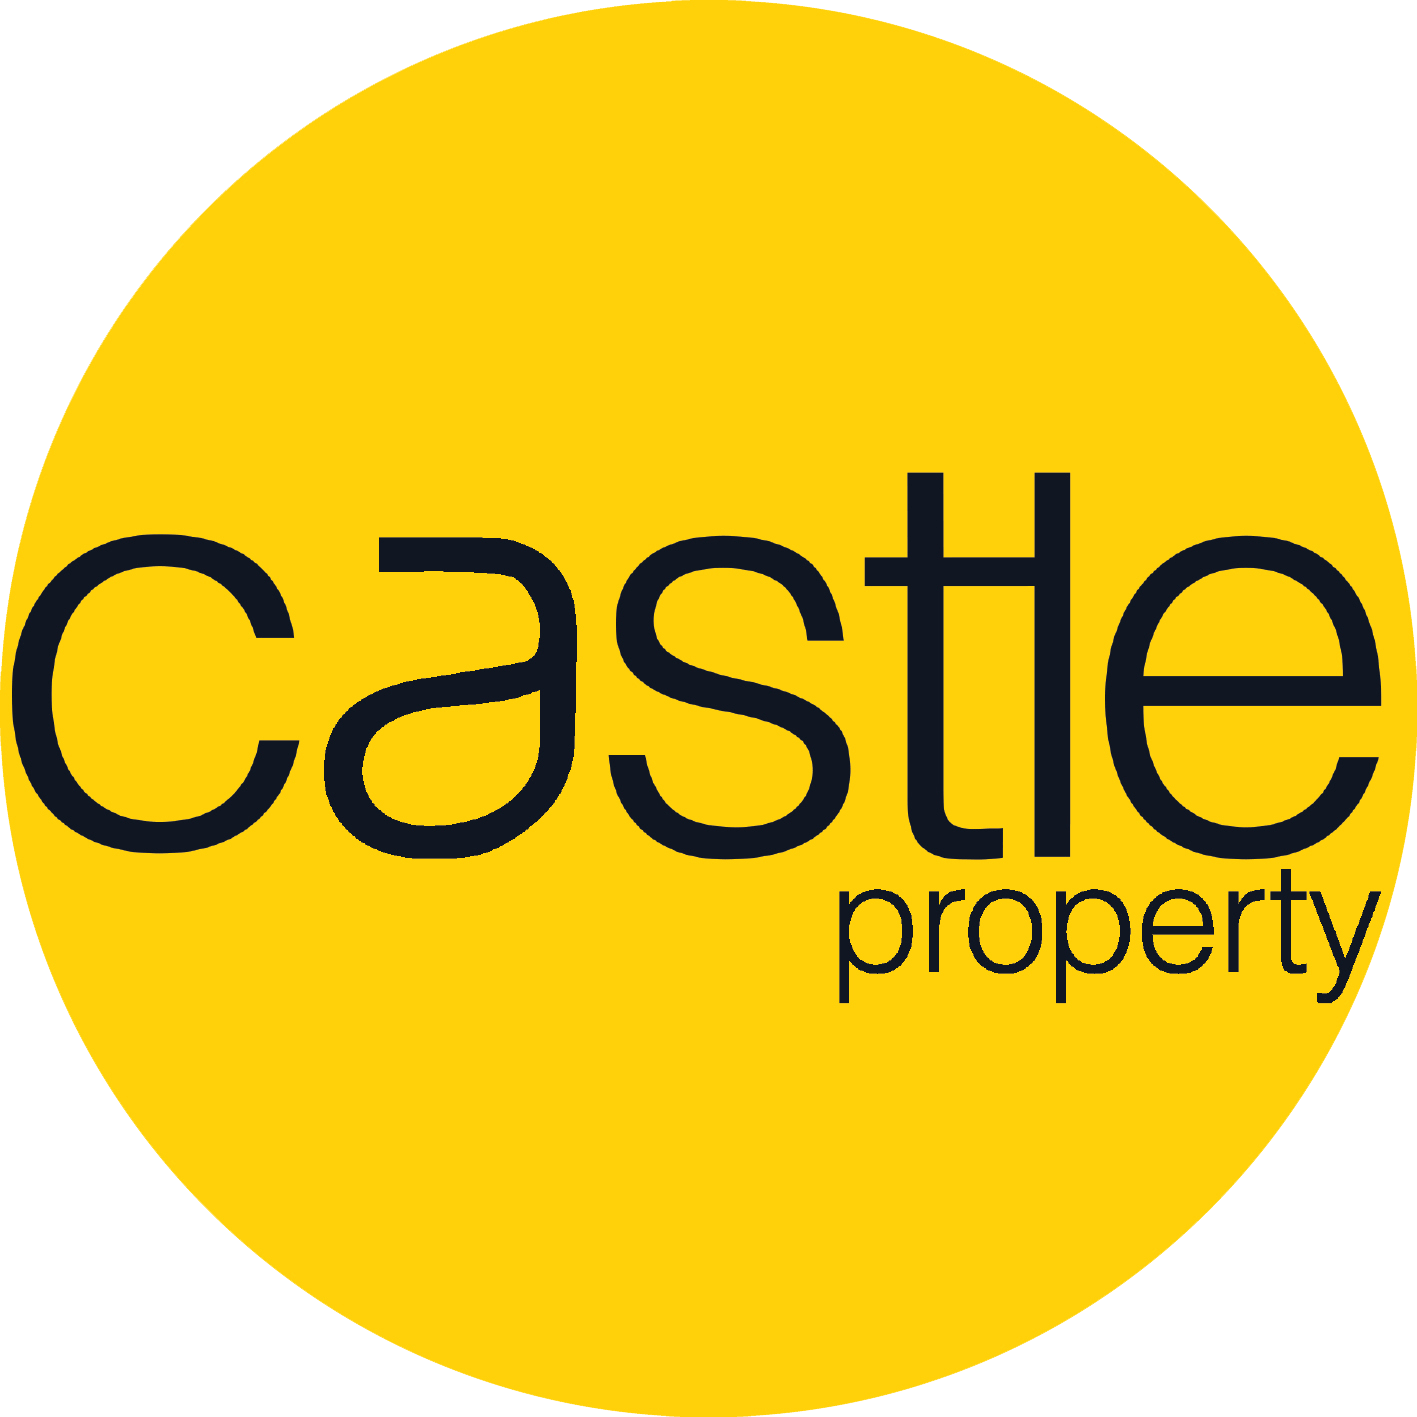 Castle Property - Castle Property – Newcastle, Hamilton NSW – – Real estate agents and property managers in Hamilton Newcastle NSW